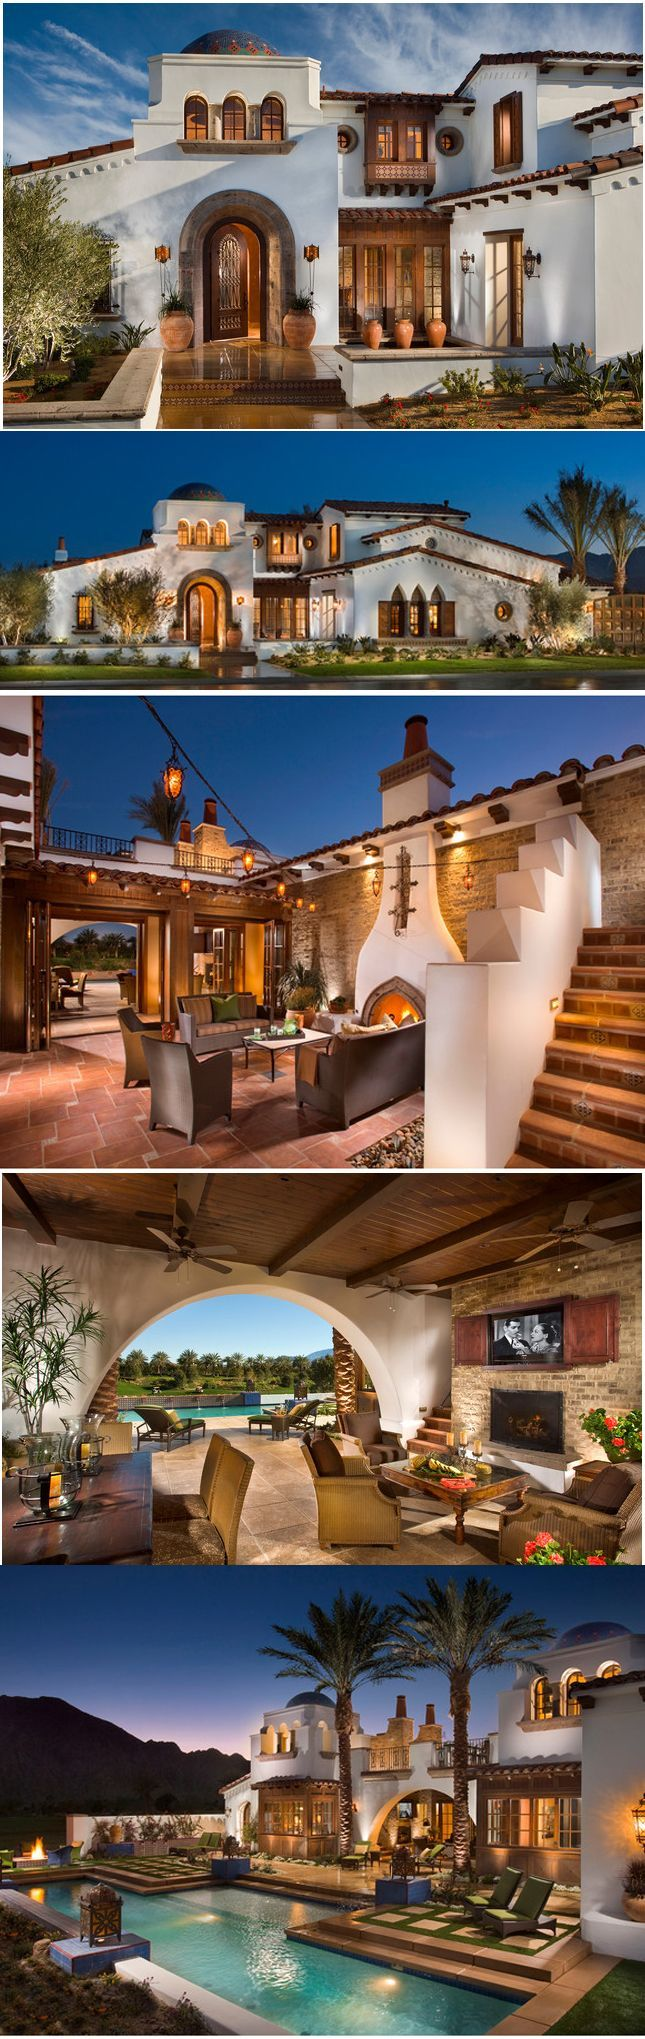 This Spanish style home is literally like a dream home for me. One of my favorite architectures for a house. Love the outdoor covered area perfect for entertainment